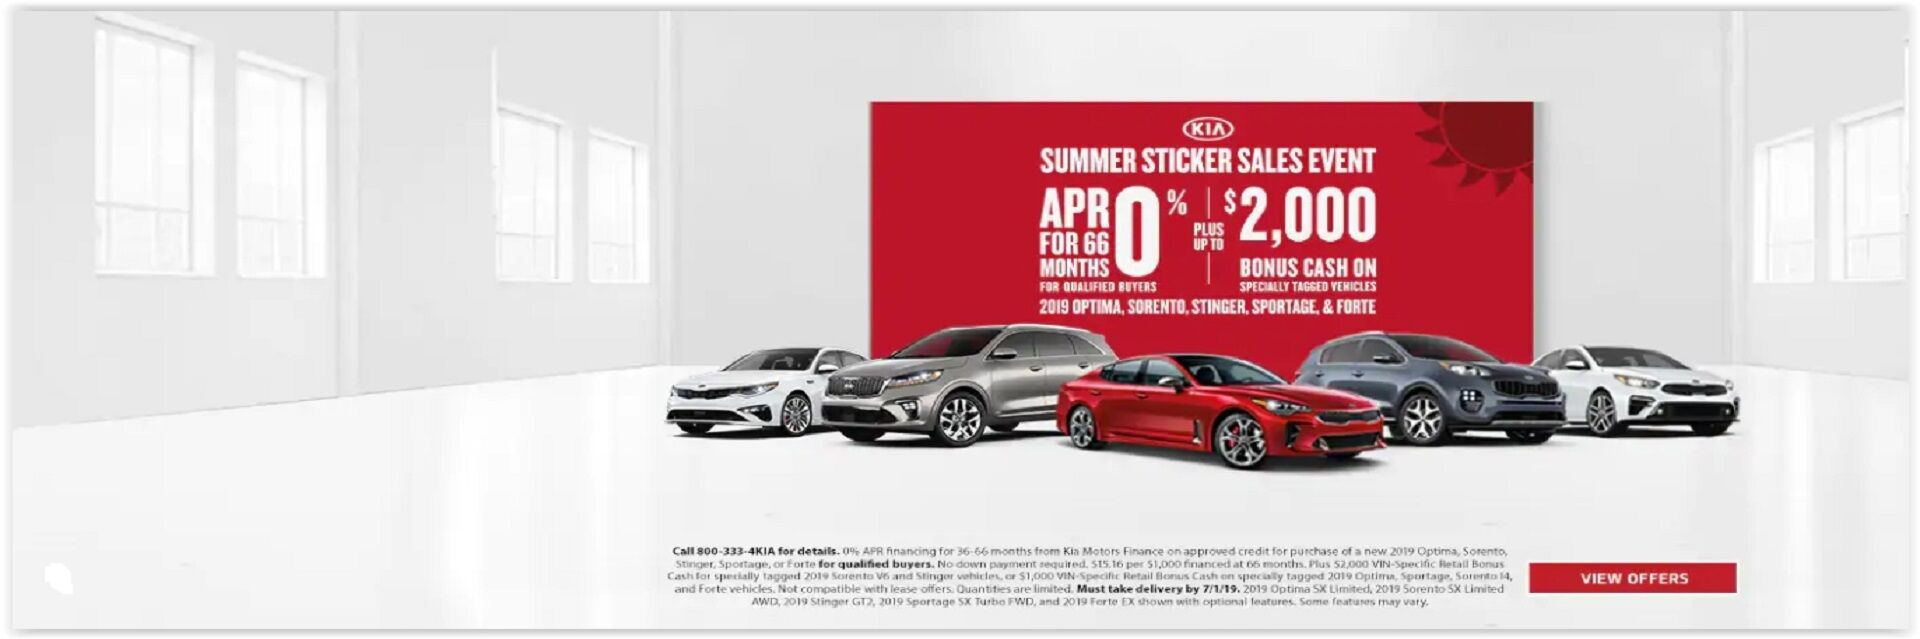 Kia Summer Sticker Sales Event Going on Now